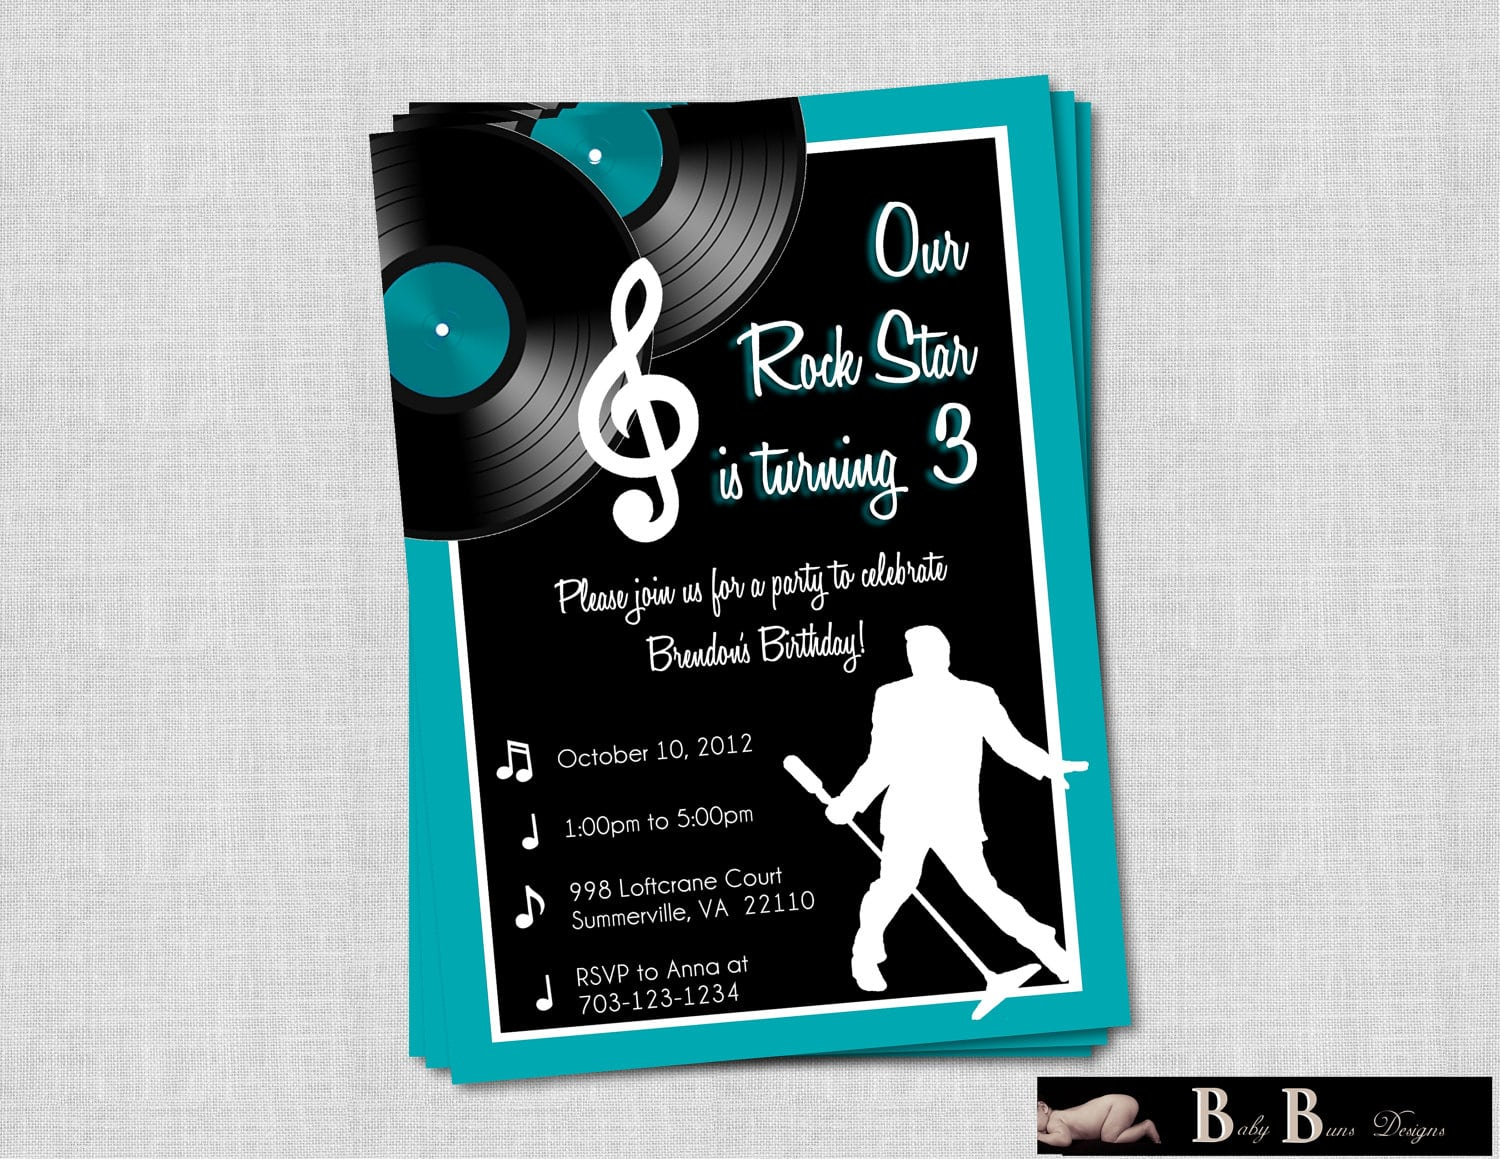 Rock & Roll Music Birthday Party Invitation By Babybunsdesigns